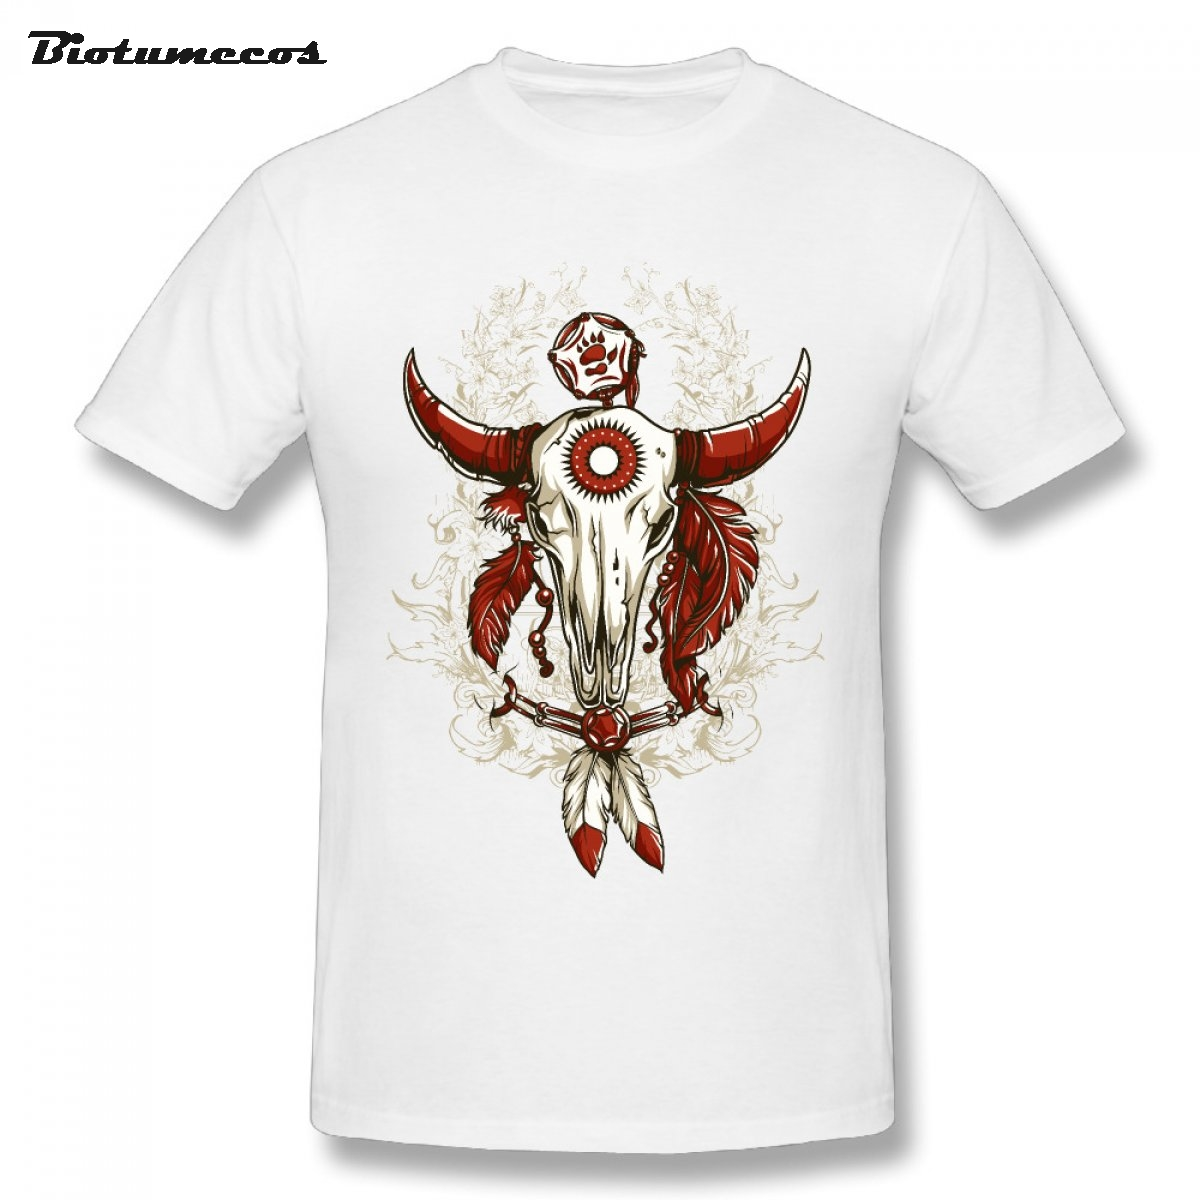 Summer Men T shirt Goat Skull Tied With Shackle Red Horns Printed Short  Sleeve O-neck 100% Cotton Tees Shirt Top Clothing MTK151 4cab0ce01d10